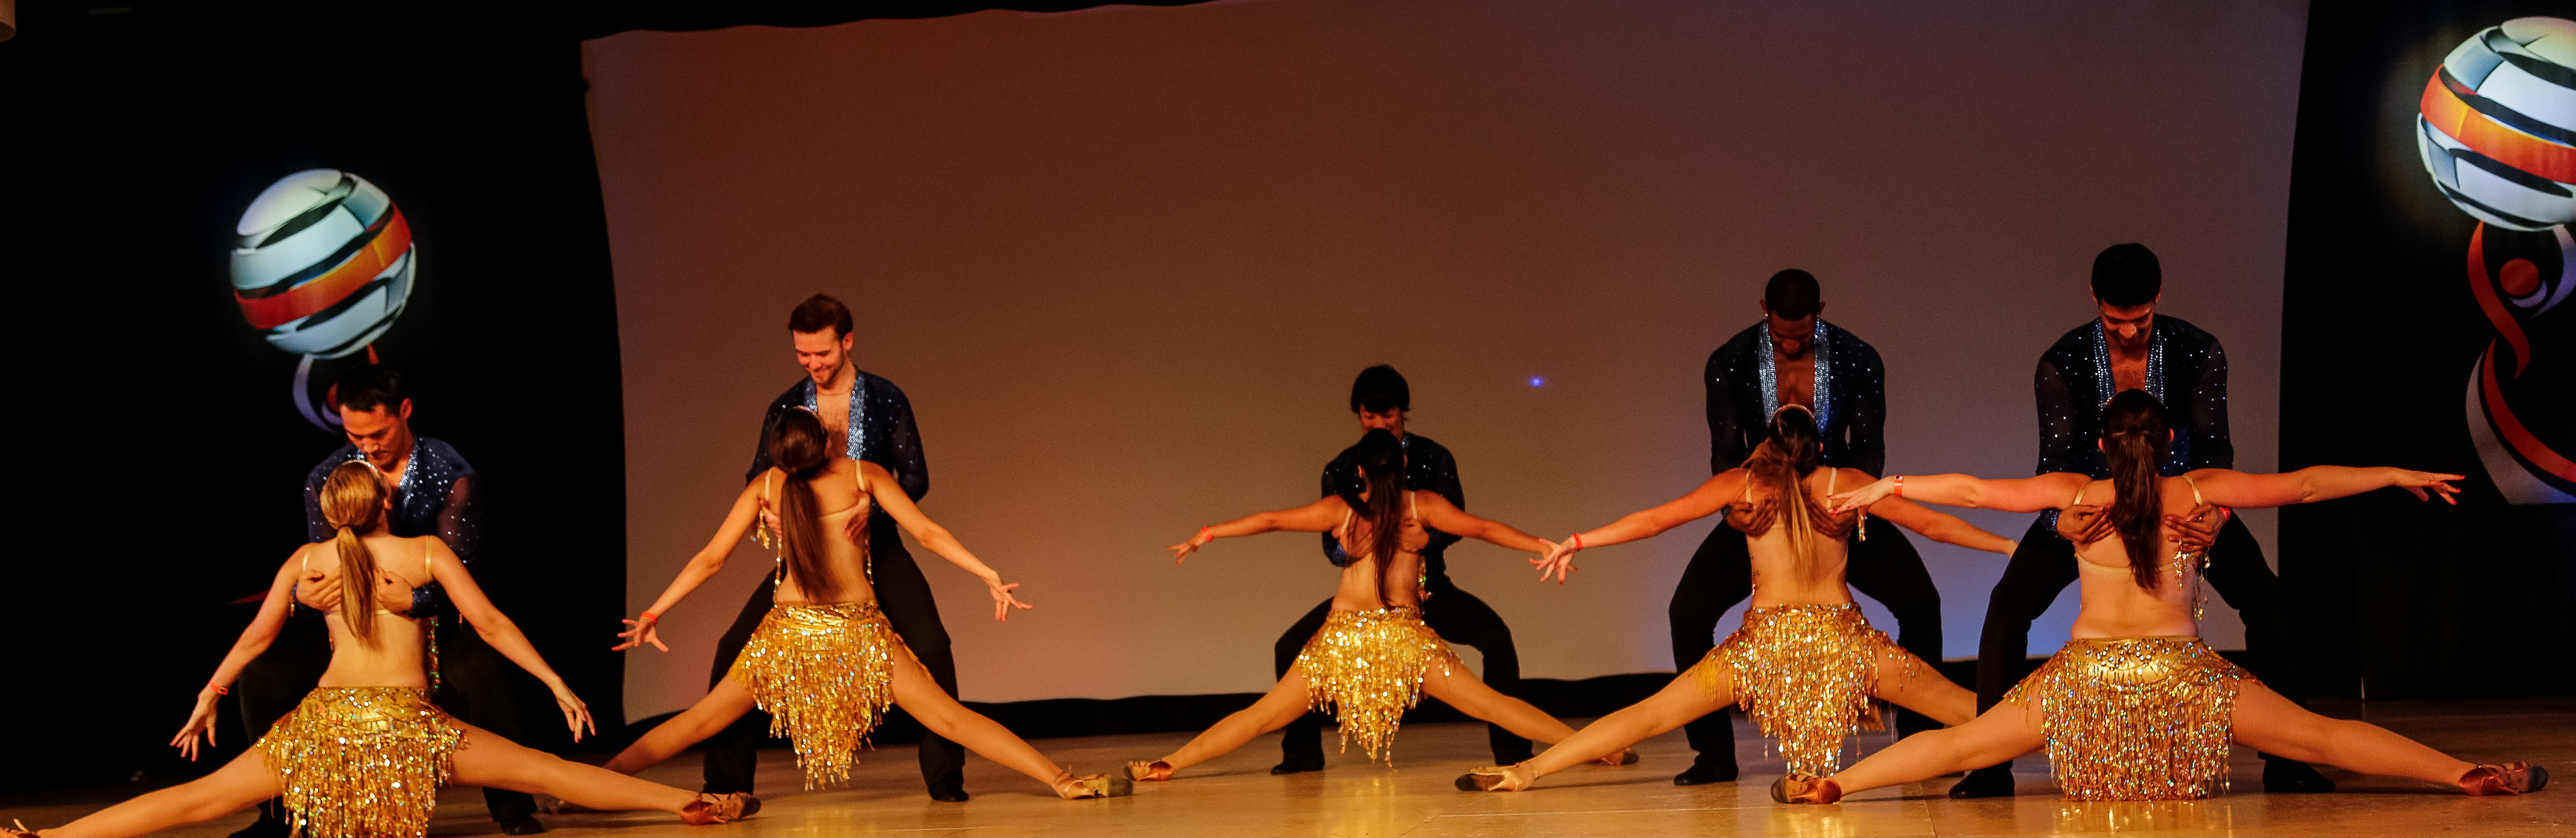 ... December 20, 2013 at 5545 × 1803 in 2013 World Latin Dance Cup Photos